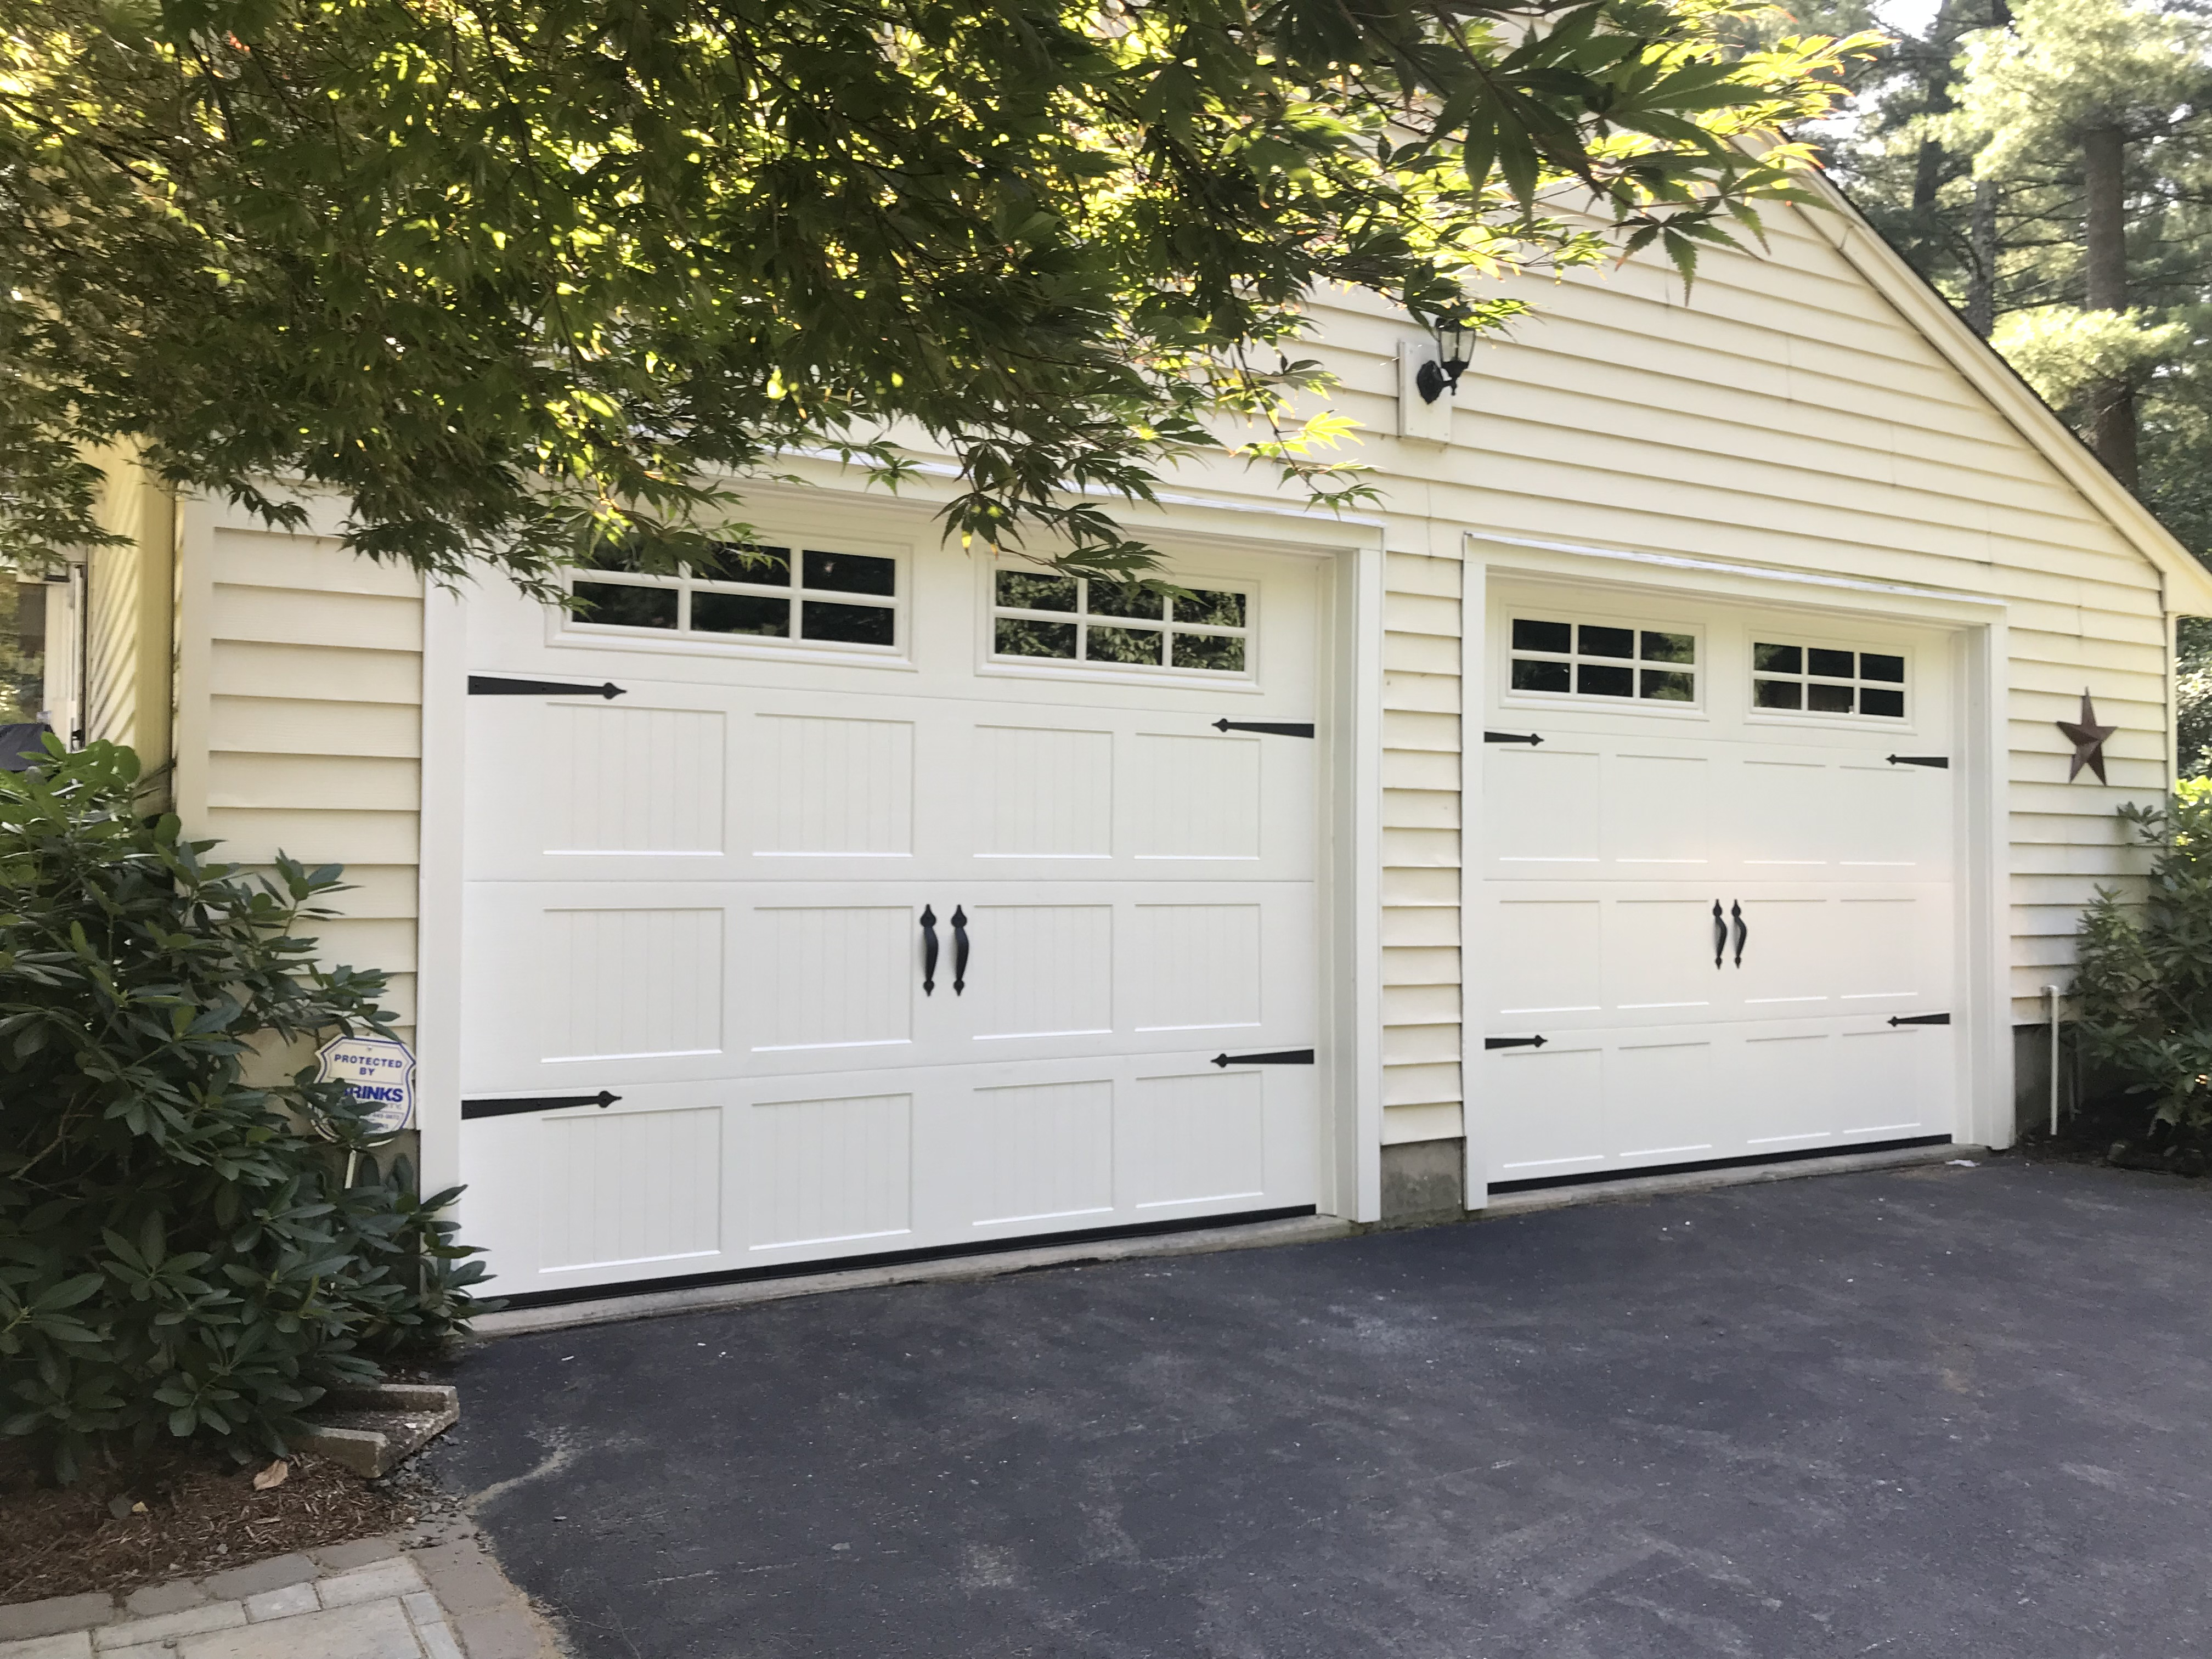 Beautiful garage doors that operate perfectly